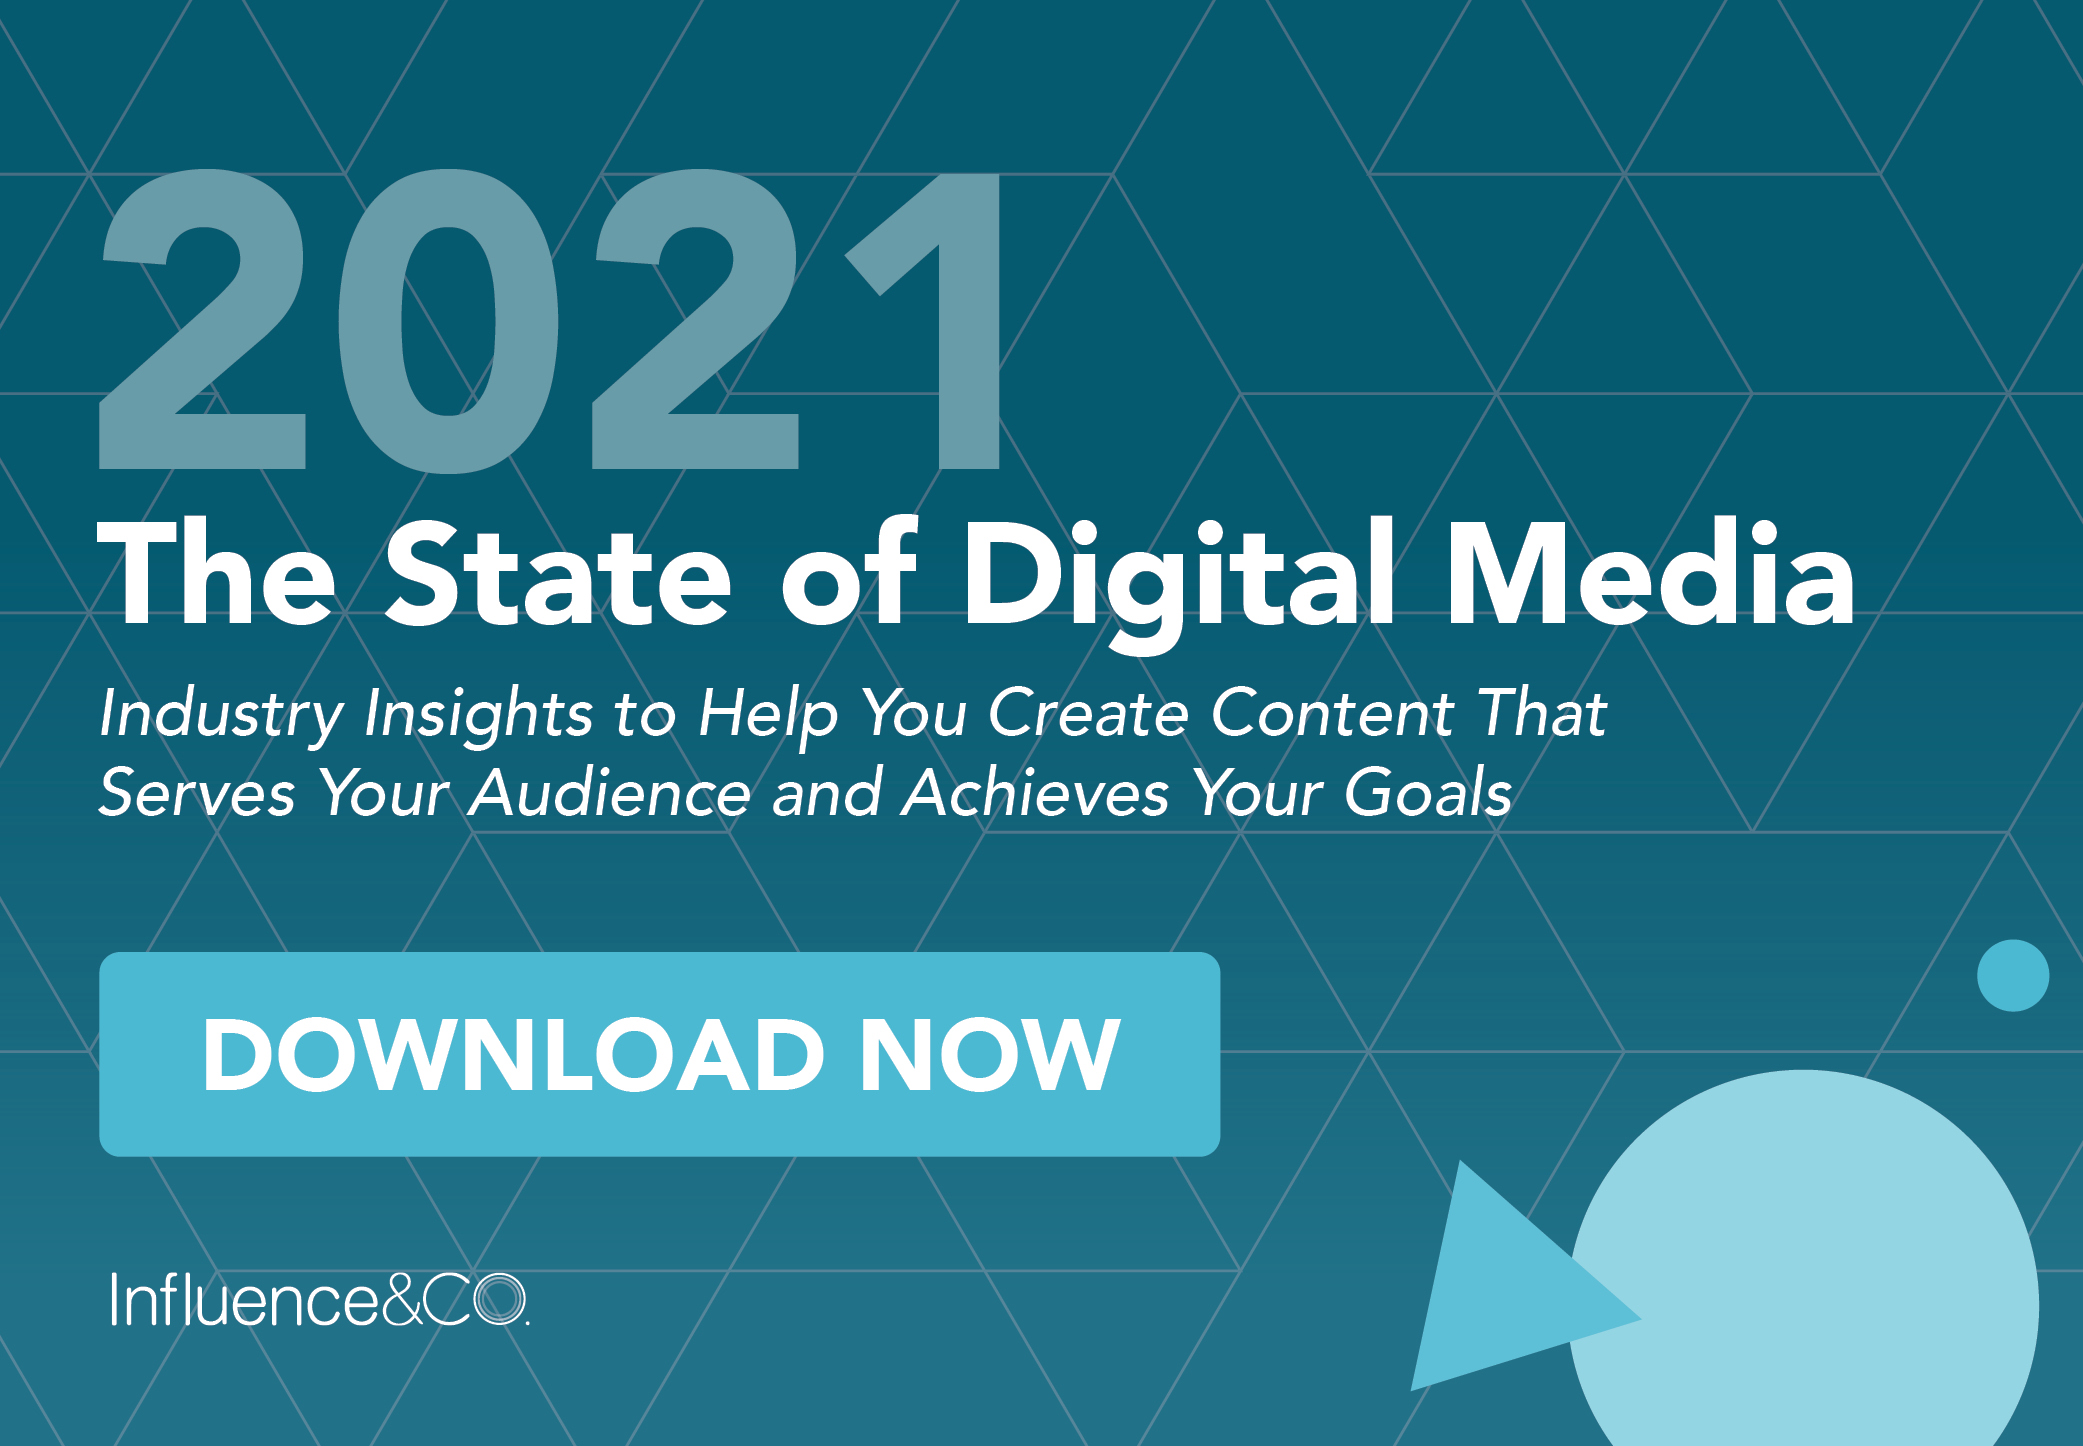 2021 The State of Digital Media